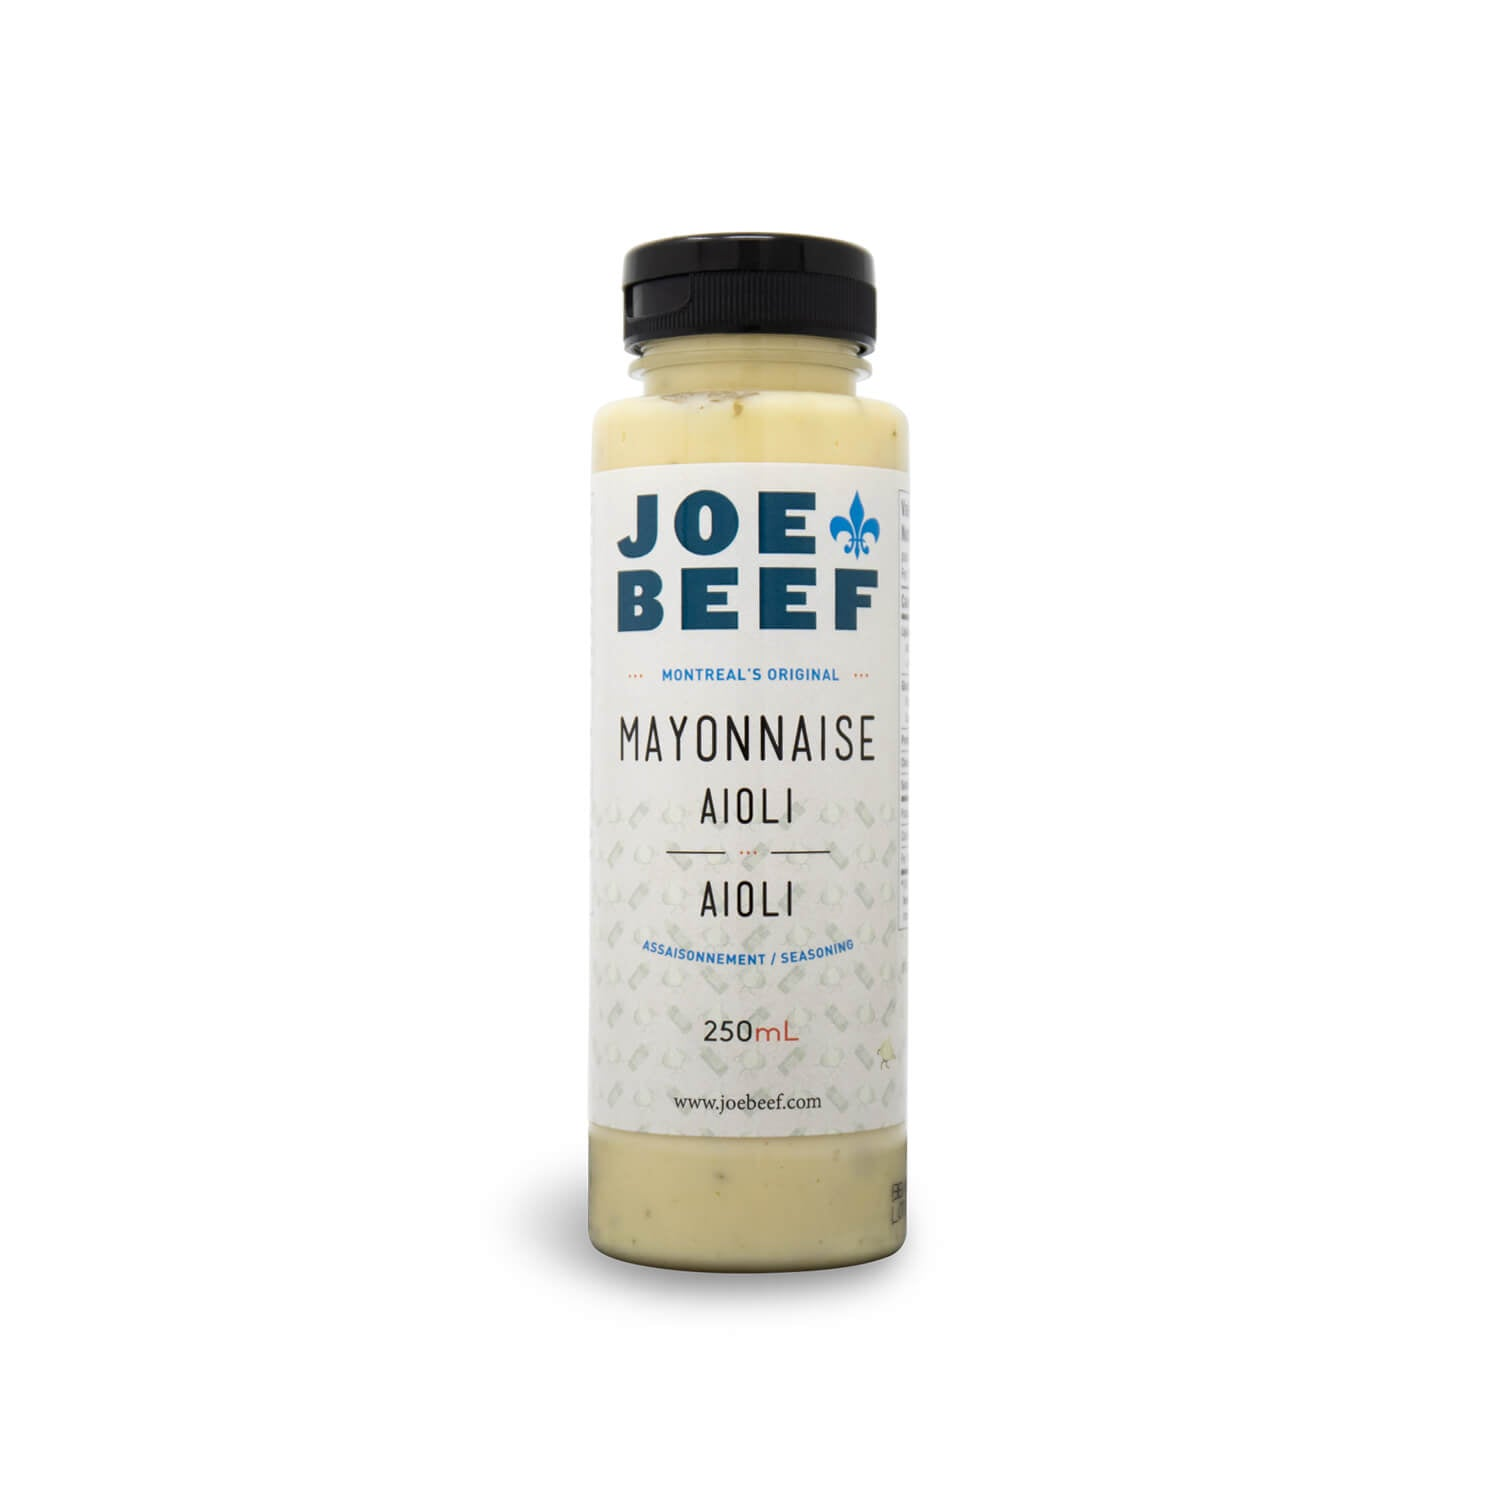 Joe Beef Aïoli Mayonnaise (300ml)